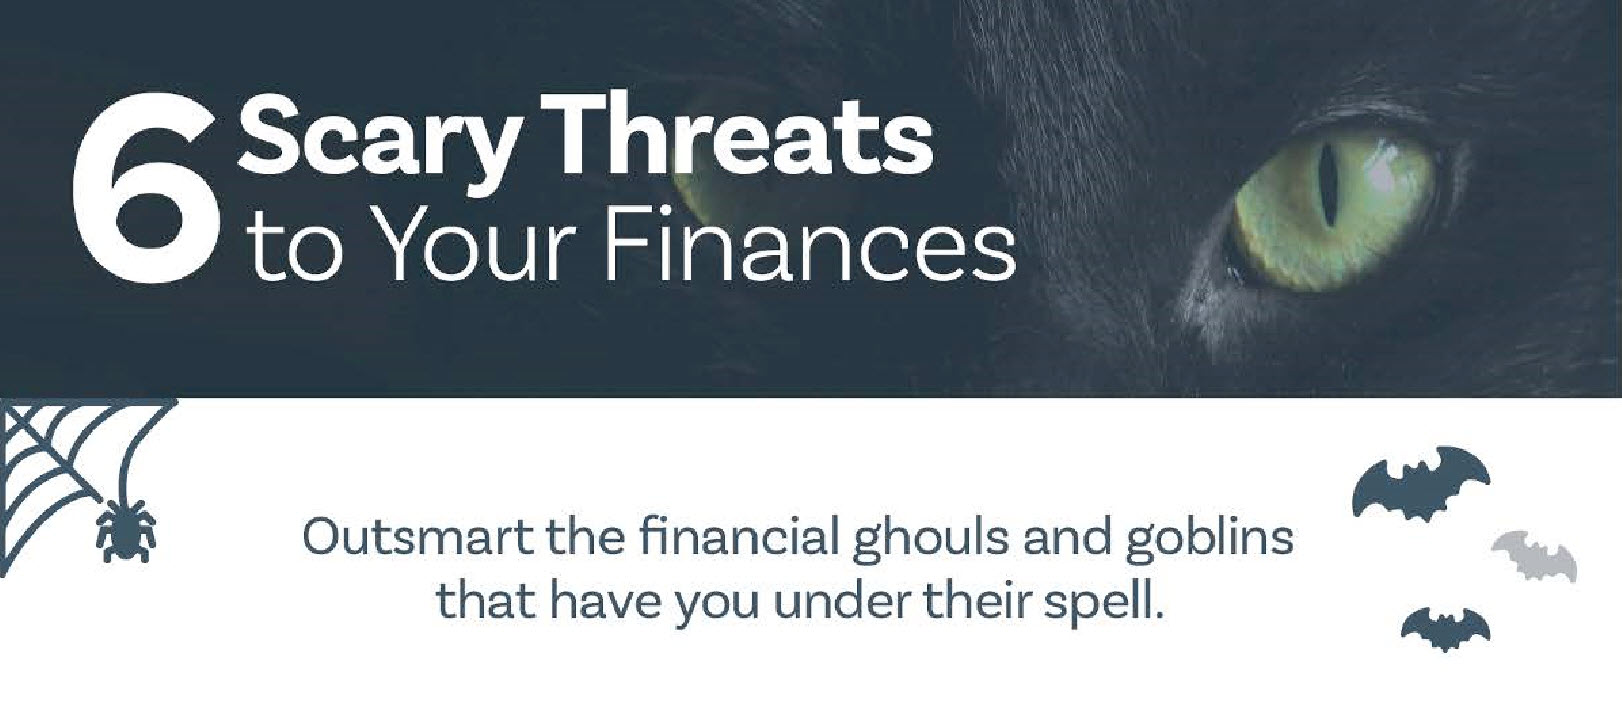 6 Scary Threats to Your Finances thumbnail